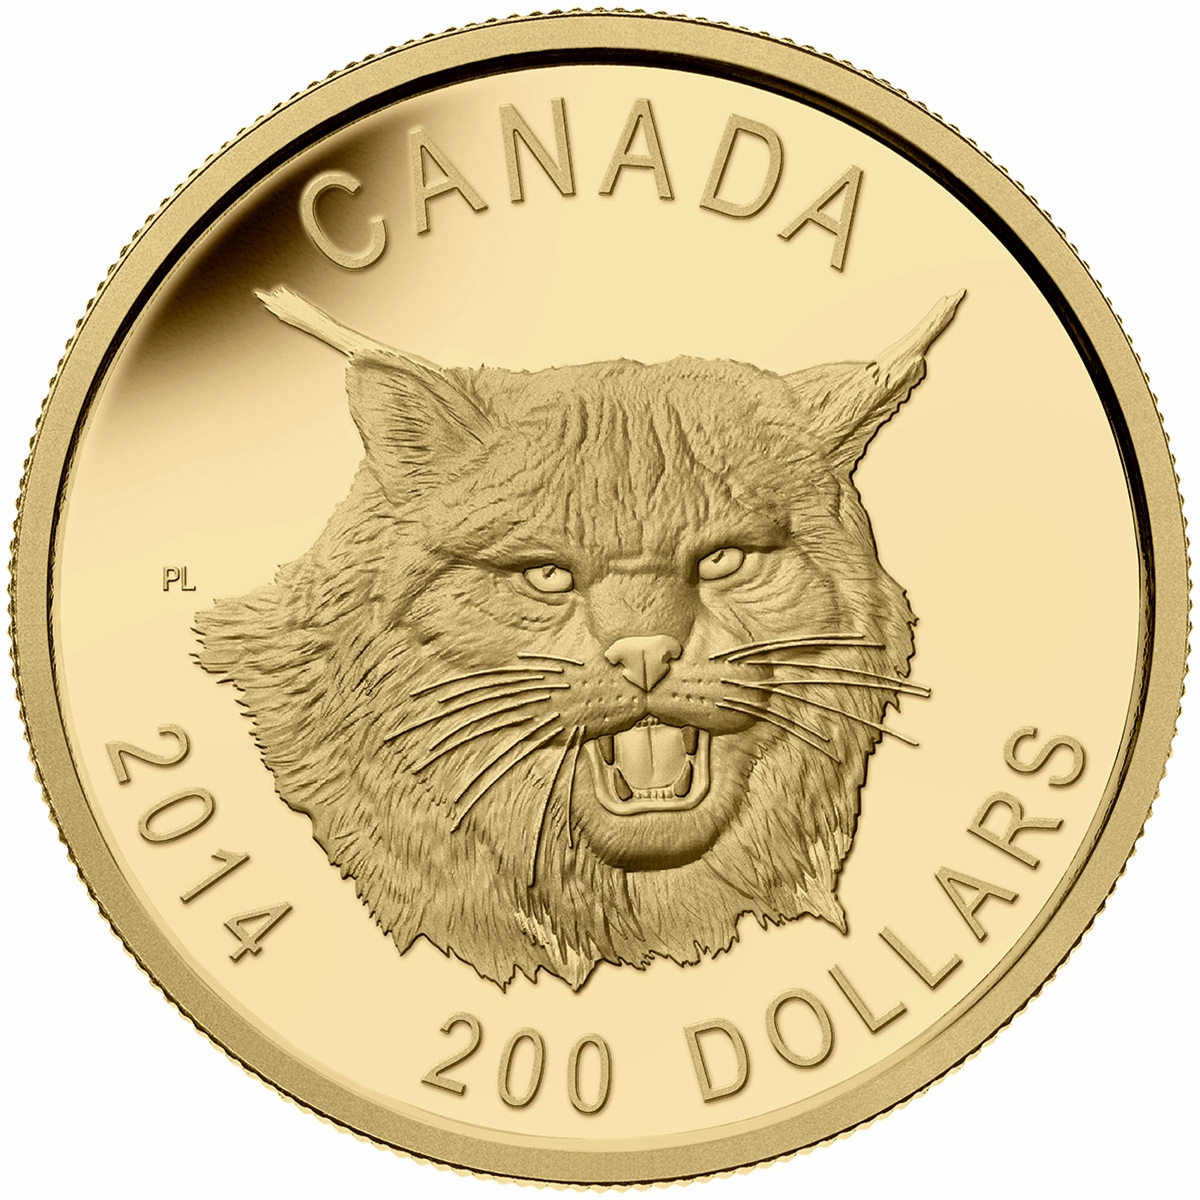 2014 200 Pure Gold Ultra High Relief Coin The Fierce